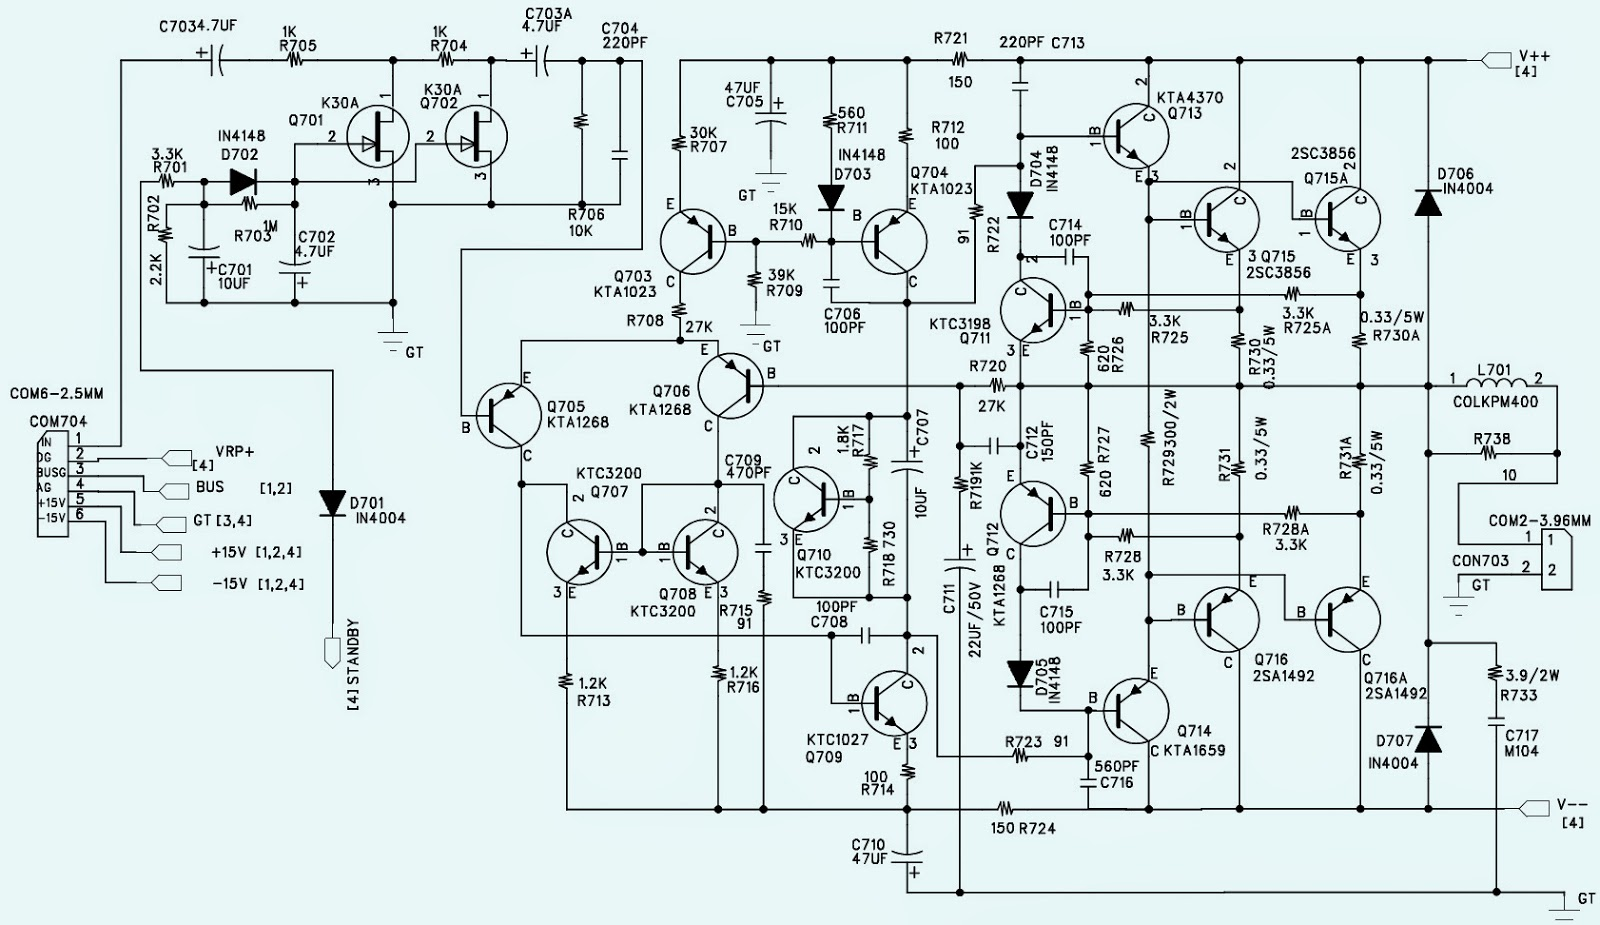 Audio Mixer Circuit Diagram Schematic Auto Electrical Ultrasimple Monoin Panning Wharfedale Pro U2013 Pm